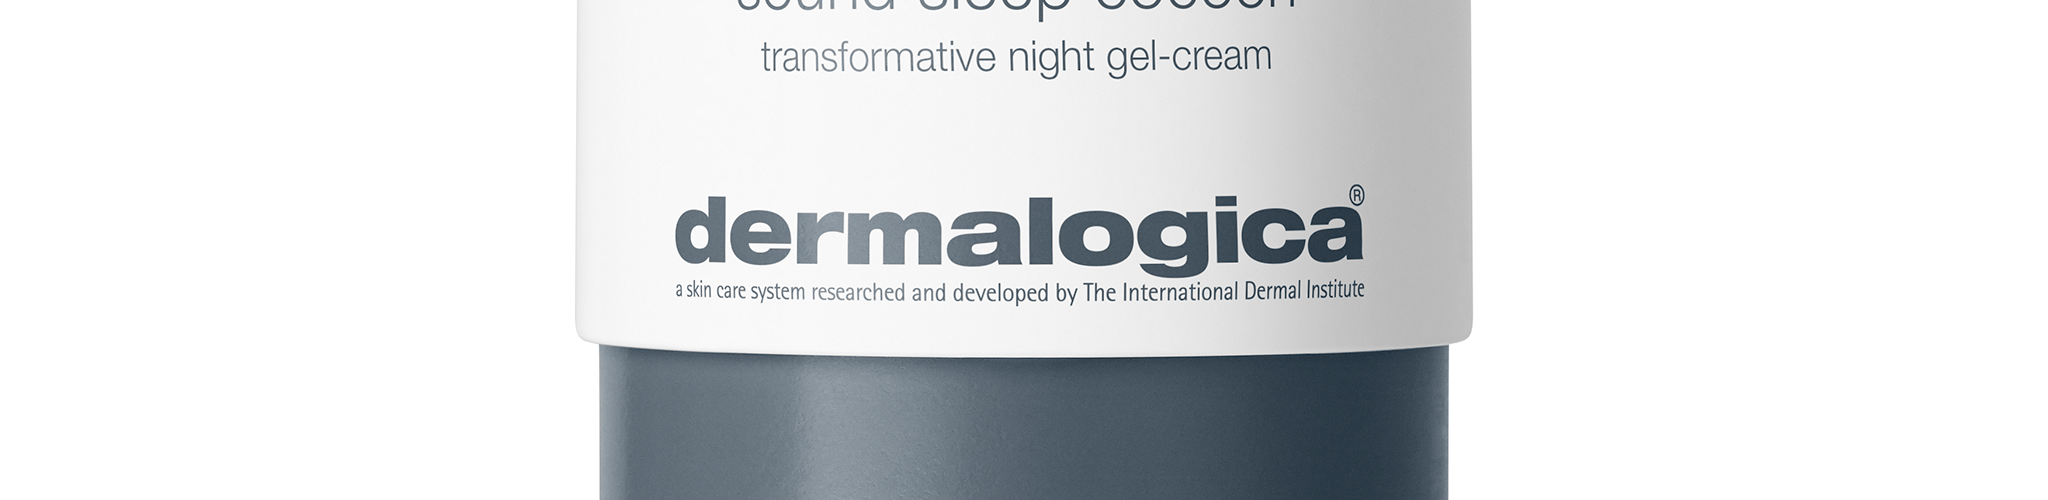 Brazen Loves: The Best Sleep Ever with Dermalogica Sound Sleep Cocoon